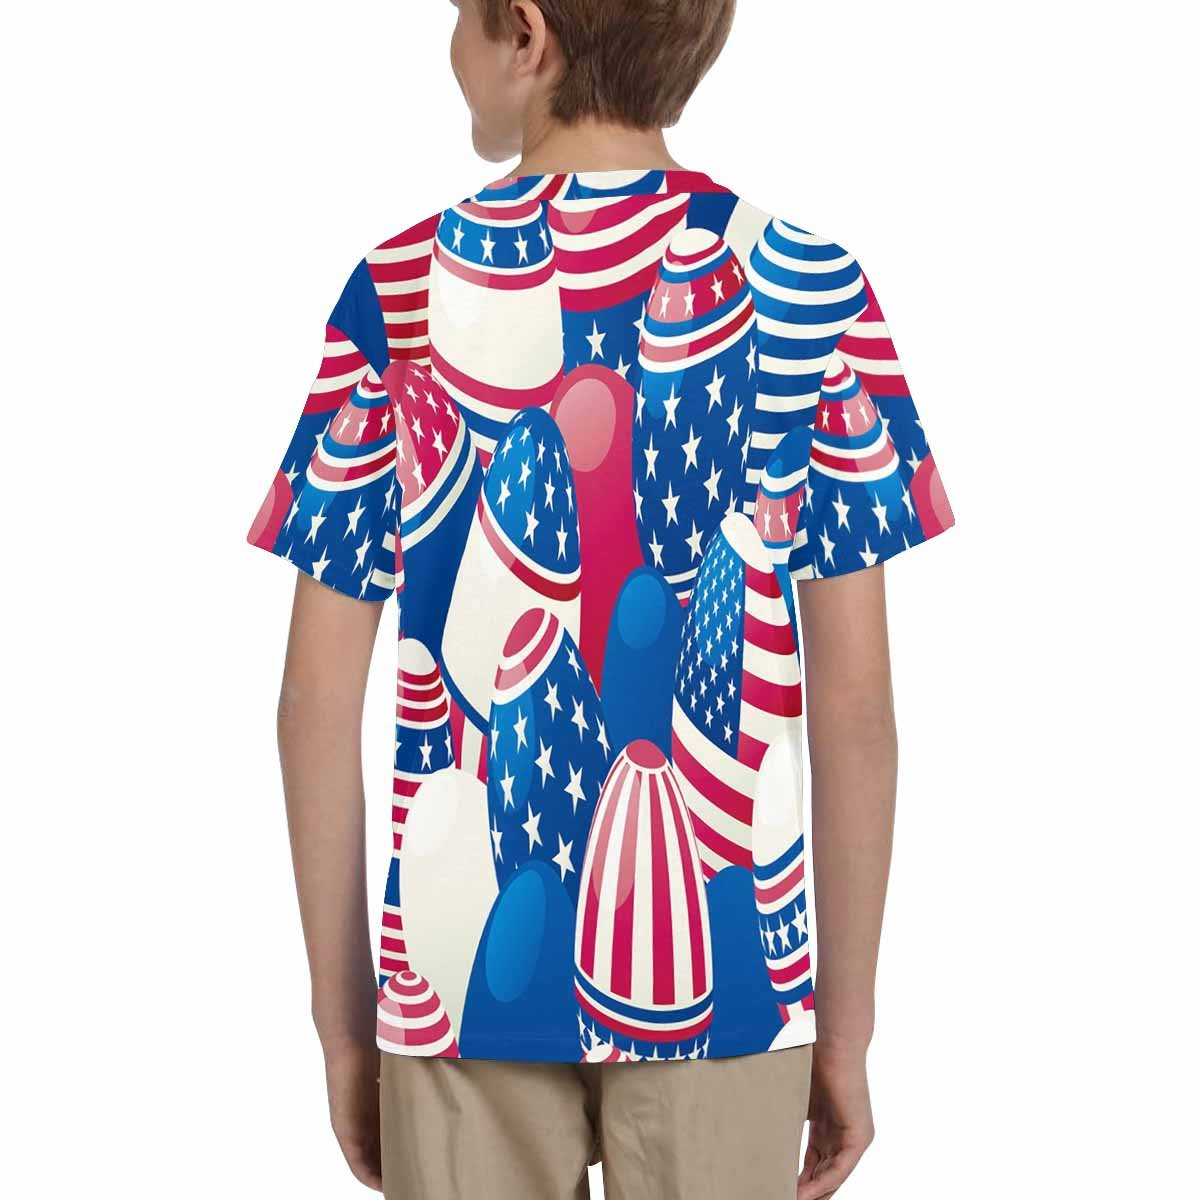 INTERESTPRINT Childs T-Shirt Easter Eggs with American Flag XS-XL